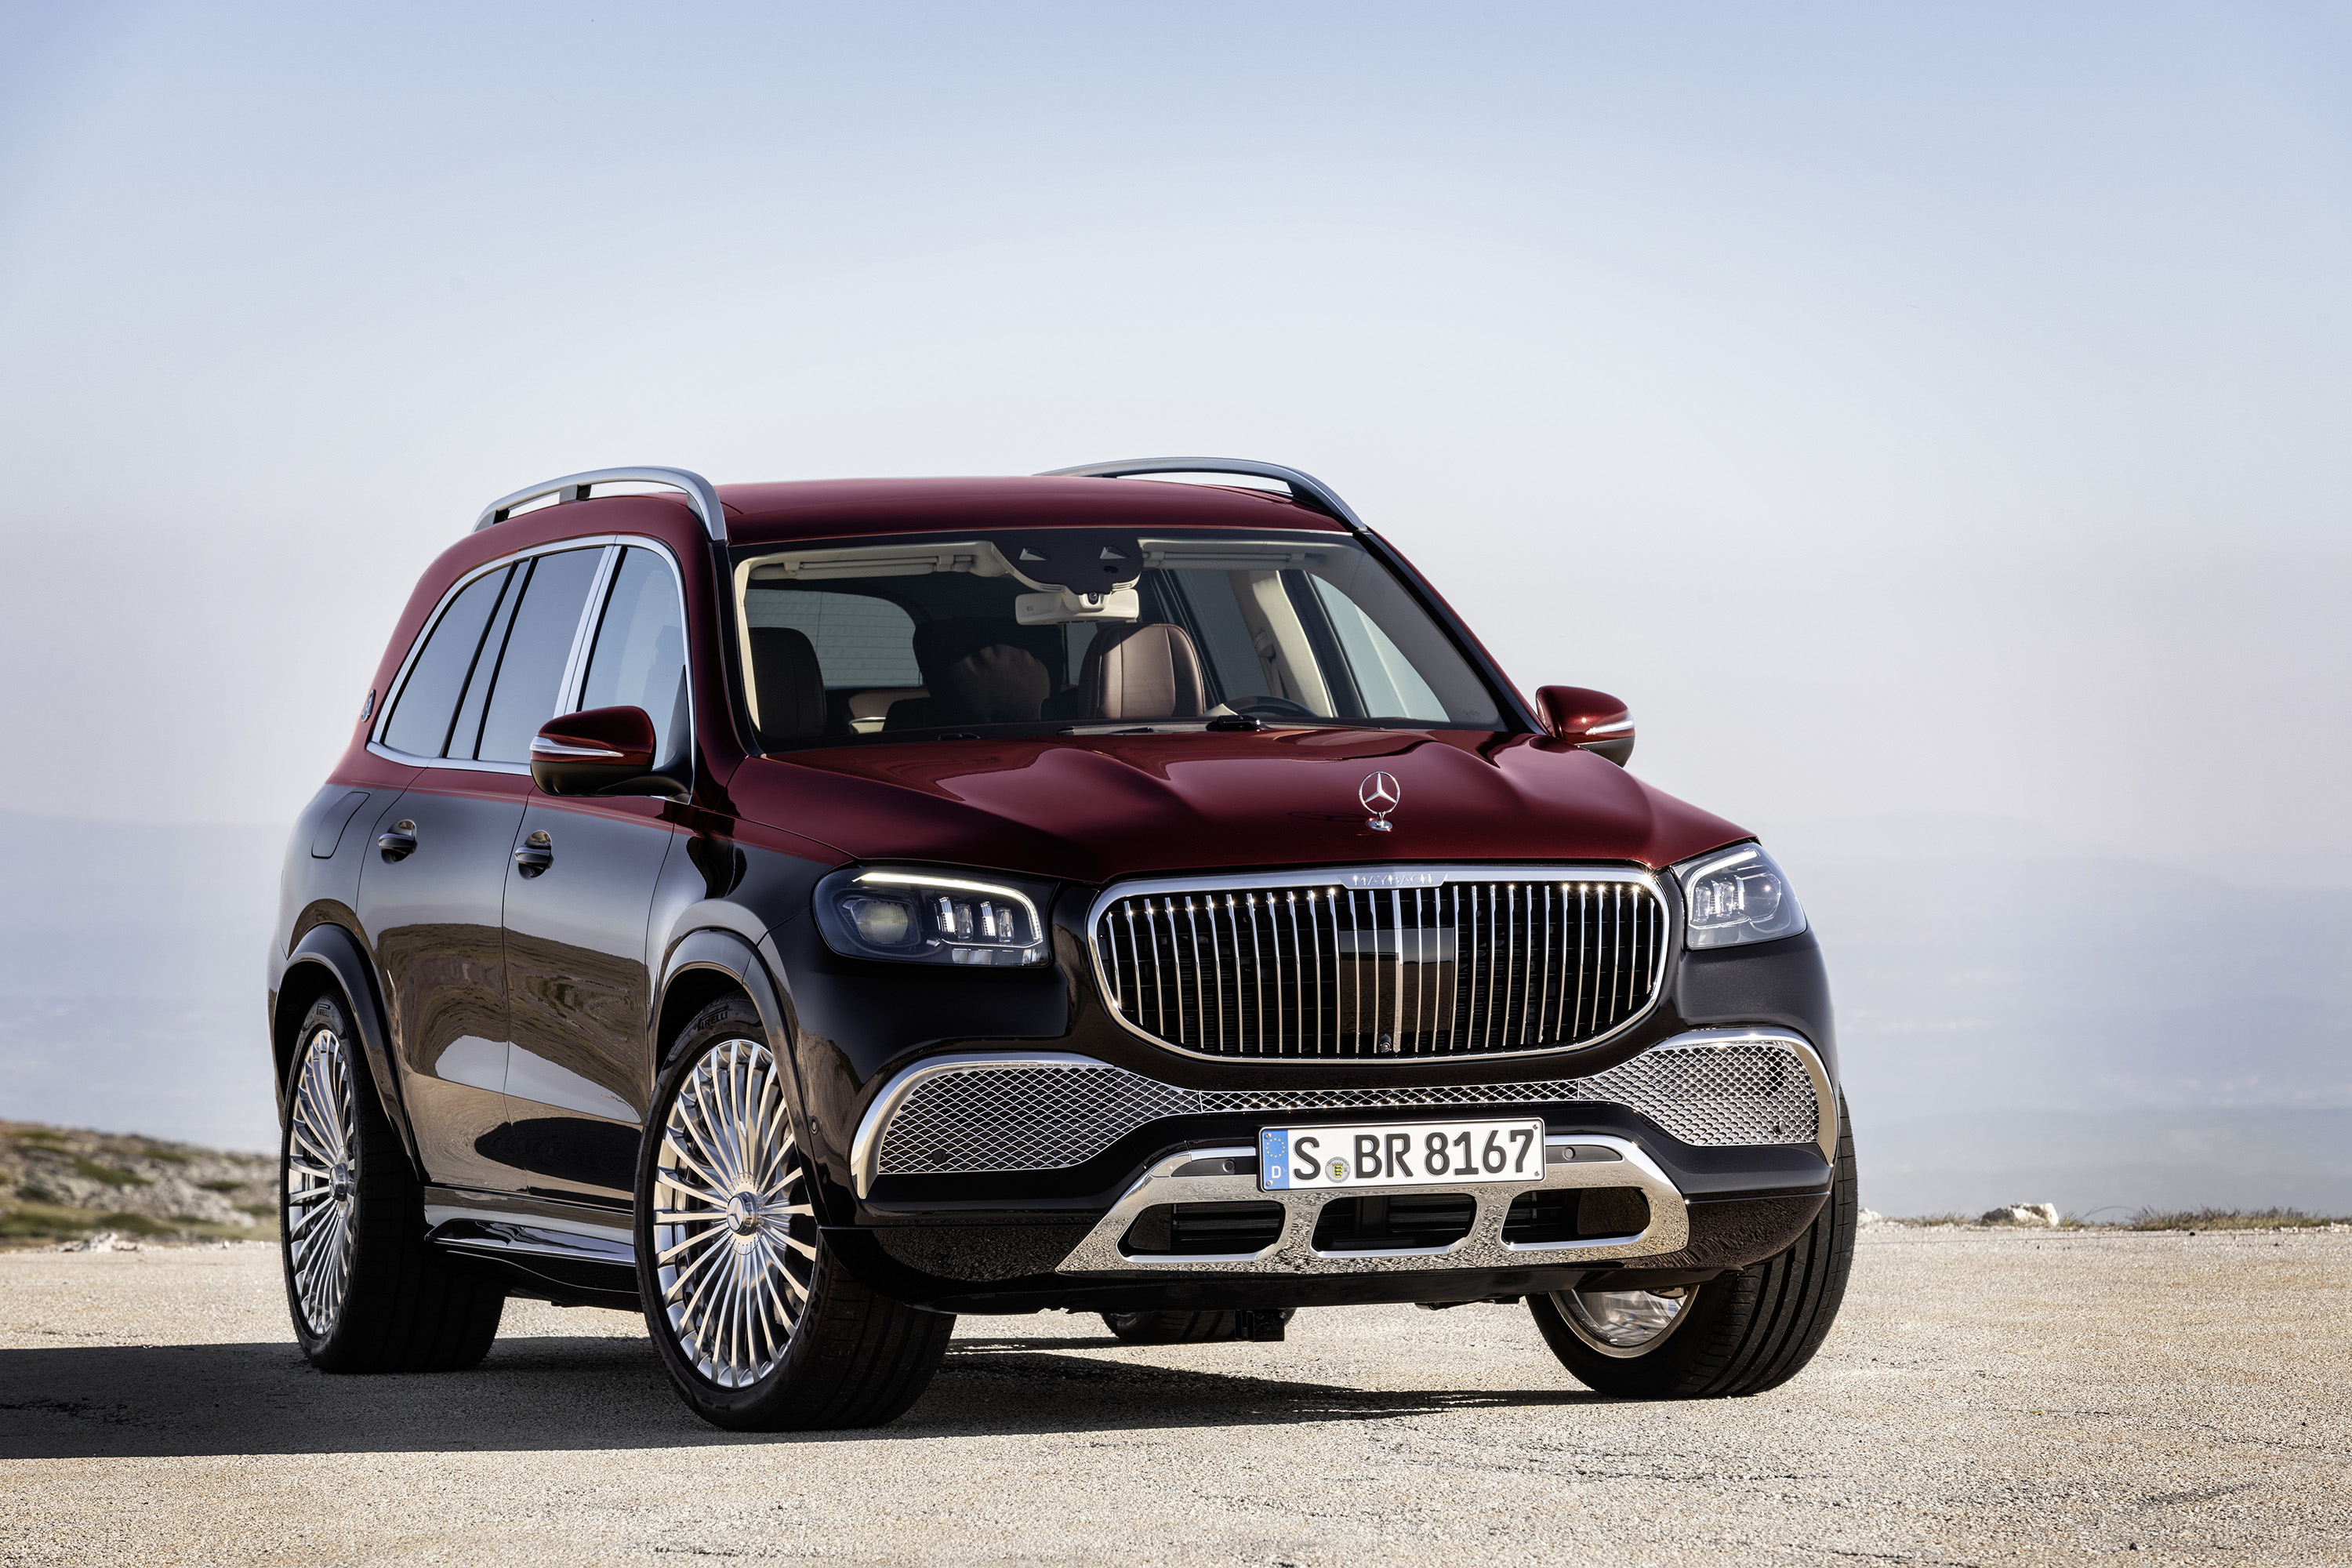 Mercedes Maybach Suv Seeks To Tap Cachet Of Flagship S Class Bloomberg